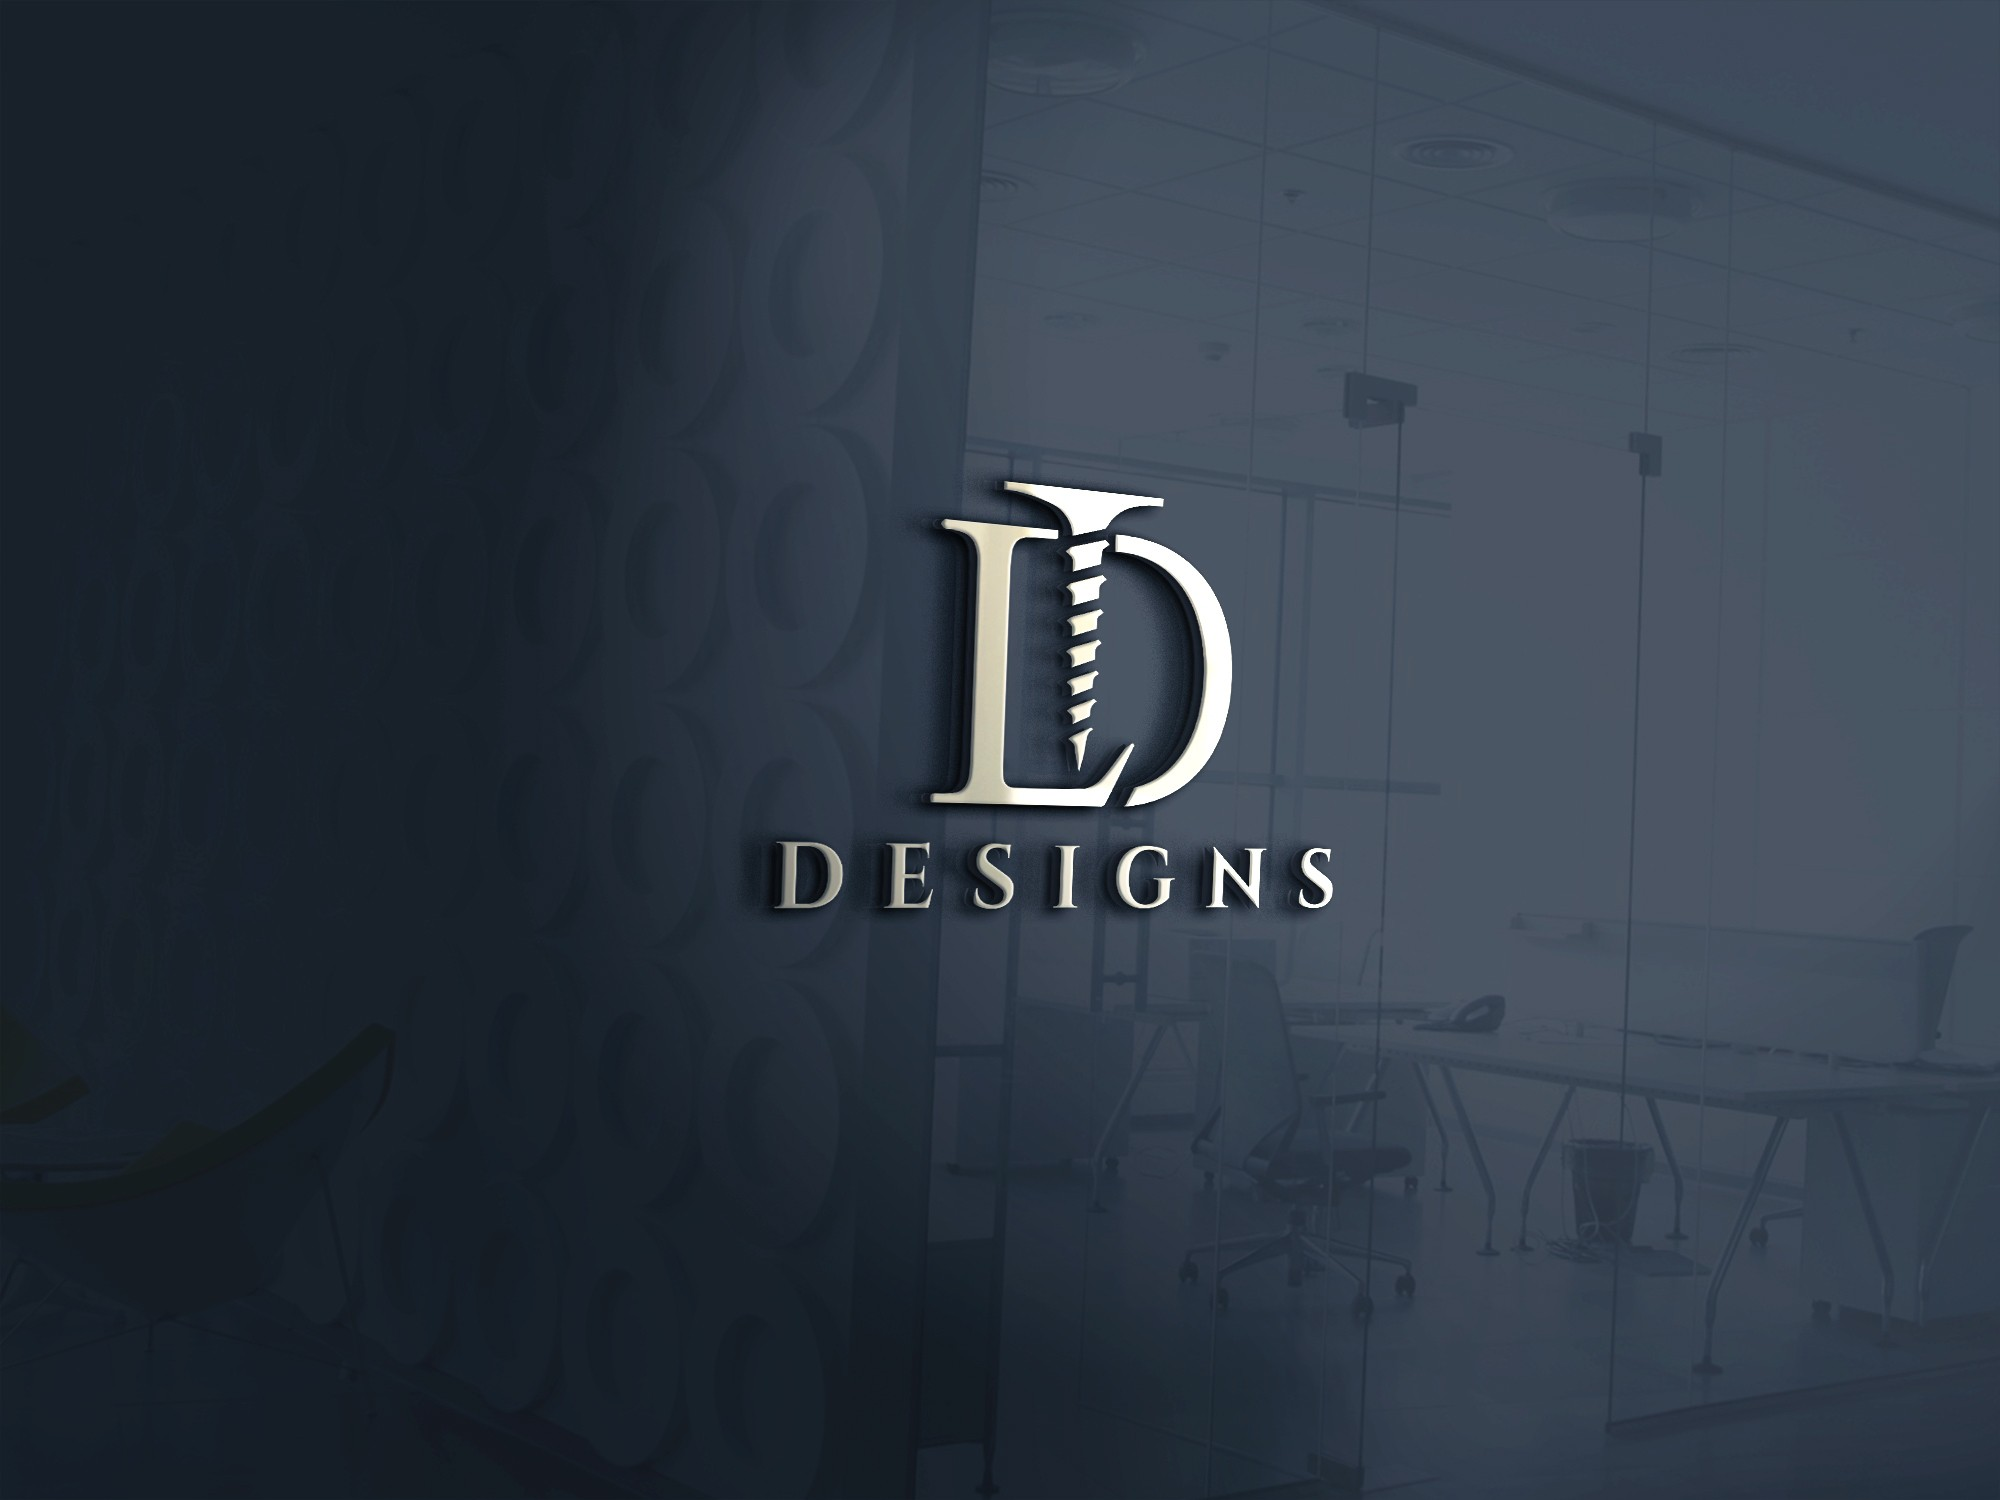 Logo design for a new finished steel and wood furniture fabrication company